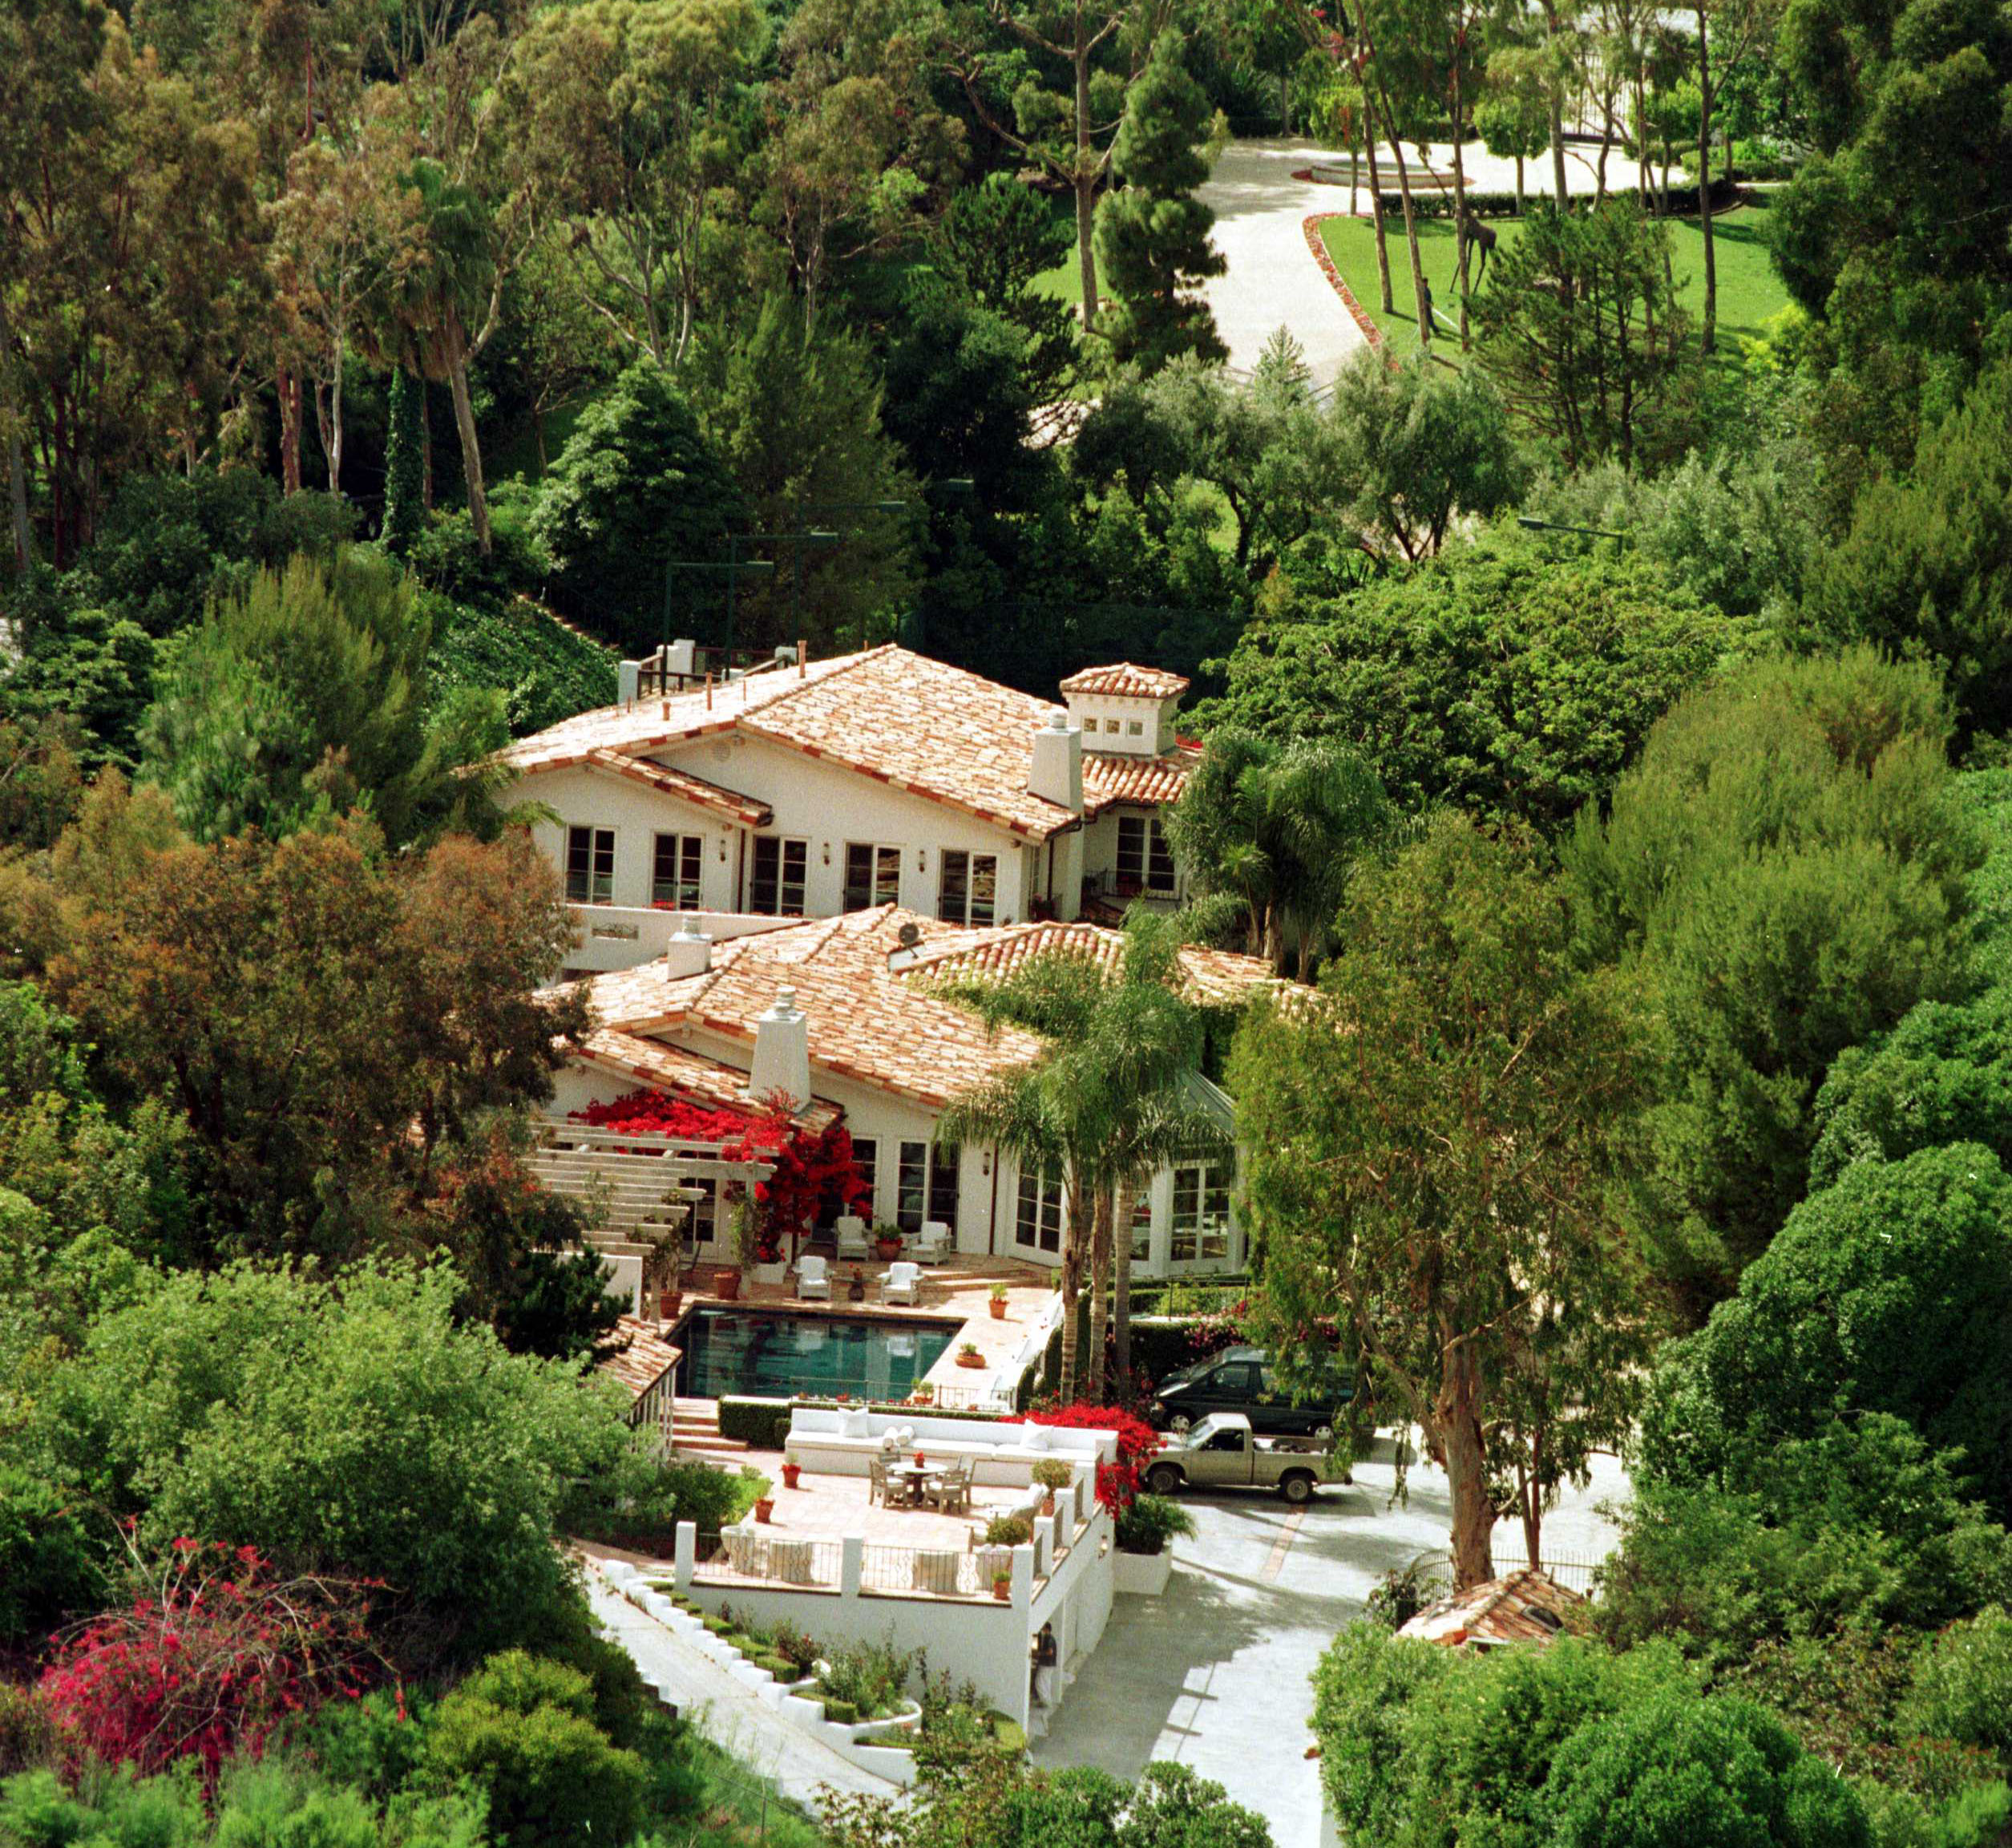 7/98 Malibu, Calif. The Malibu Home Of The Late Dodi Fayed (Photo By James Aylott/Getty Images)